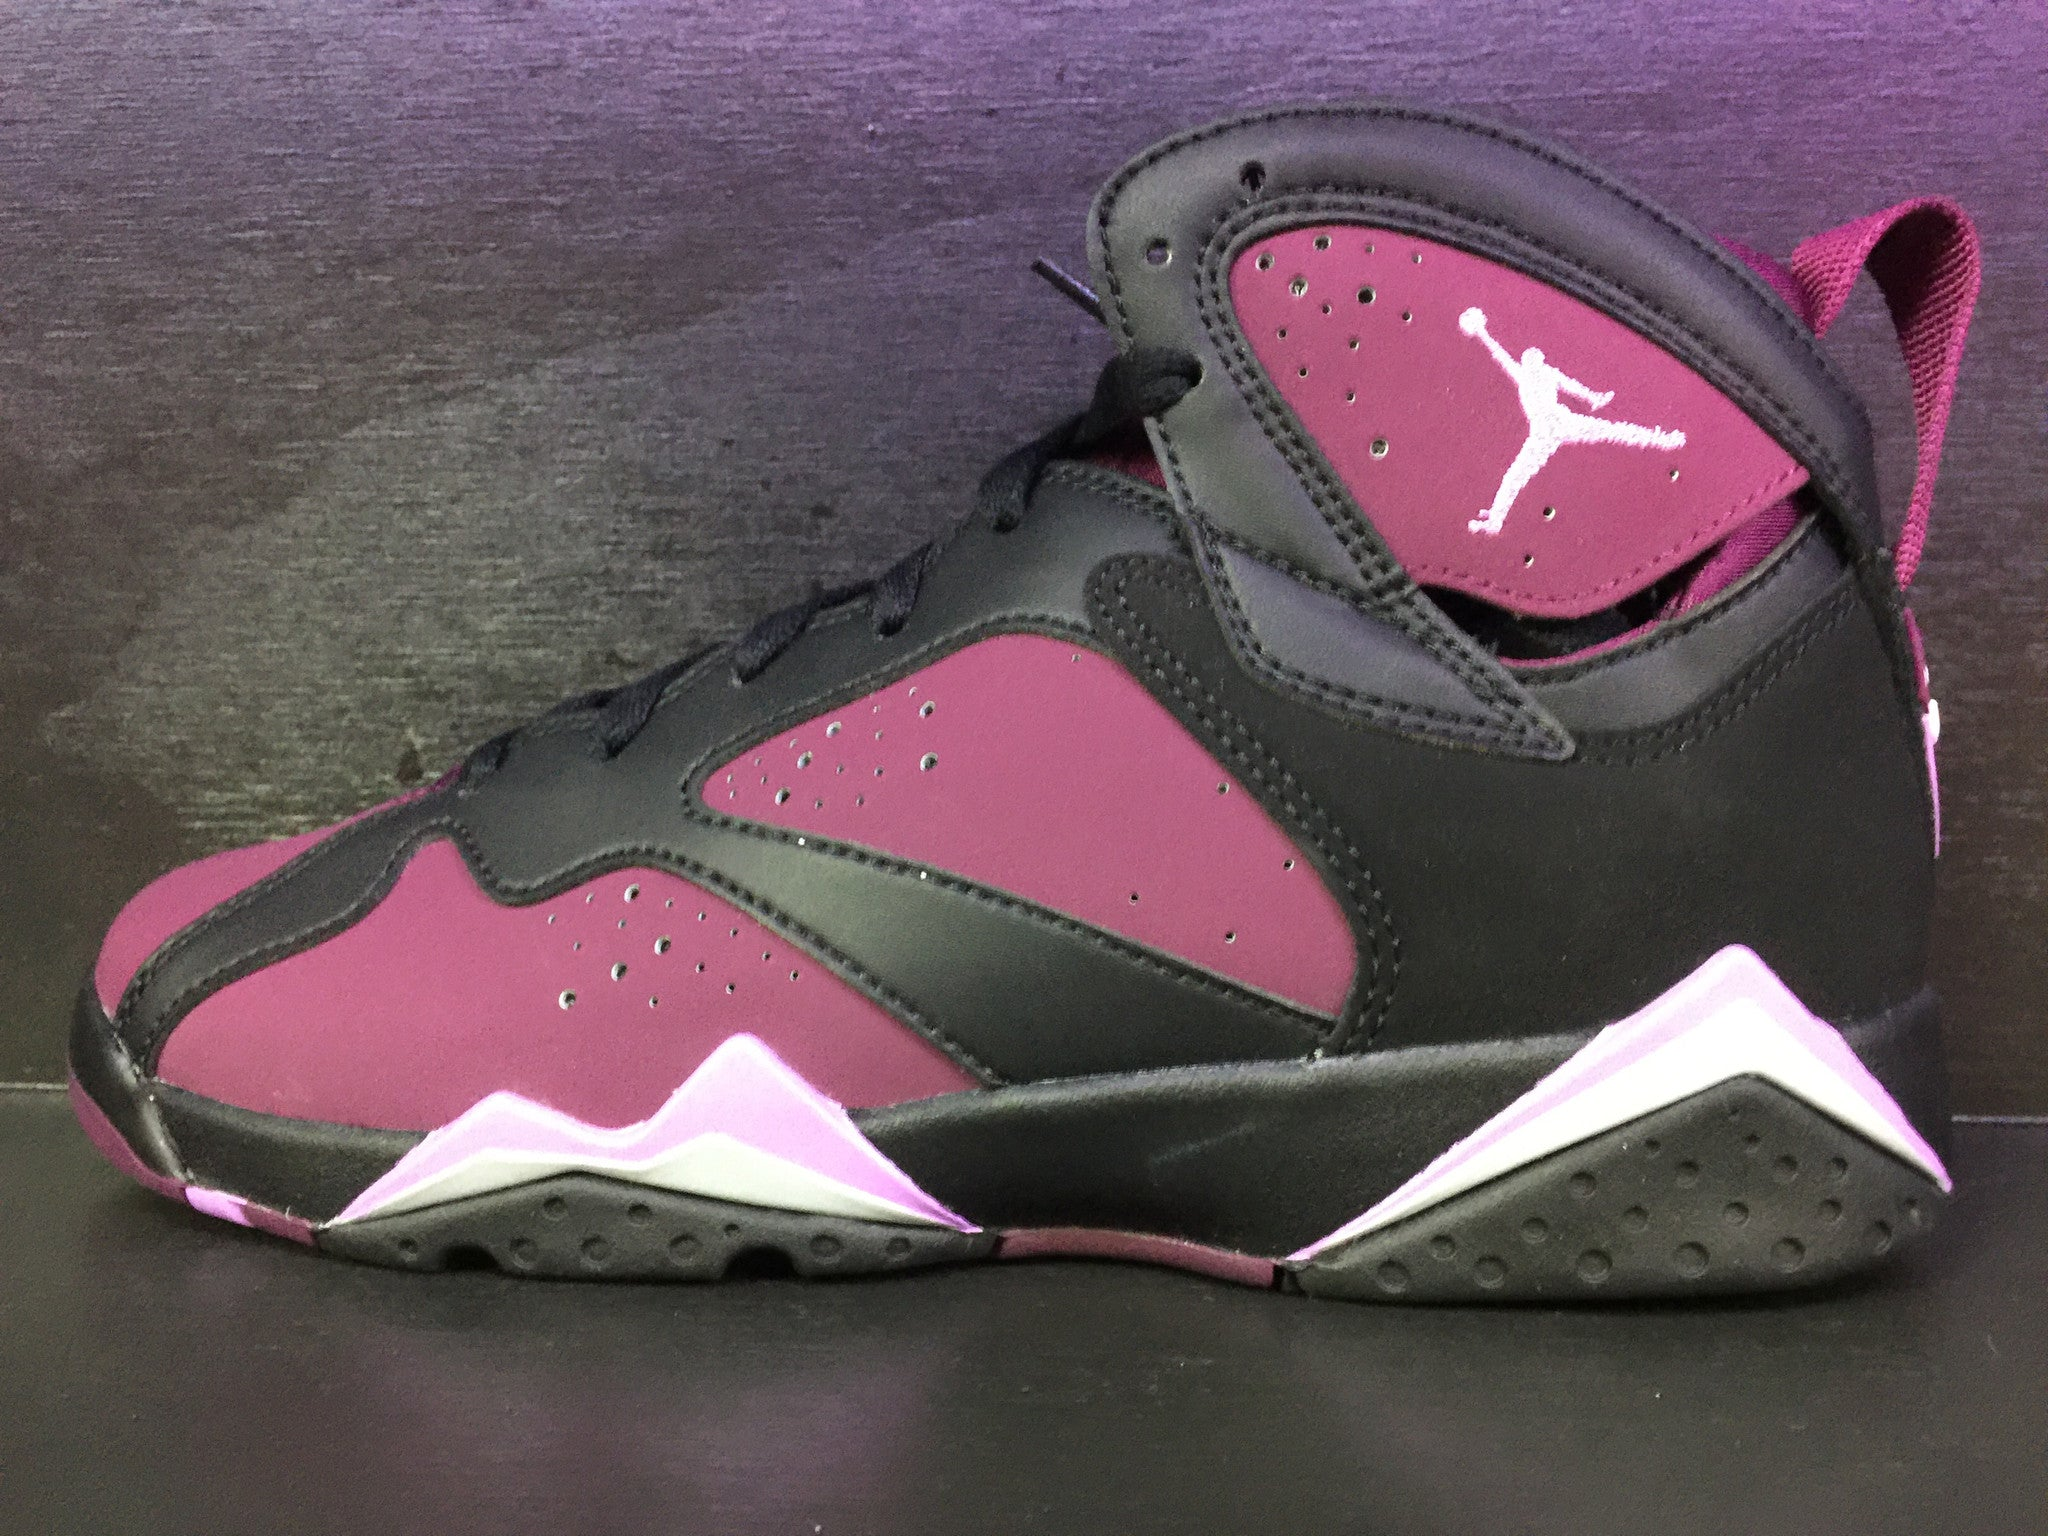 Air Jordan 7 Retro GG 'Mulberry'